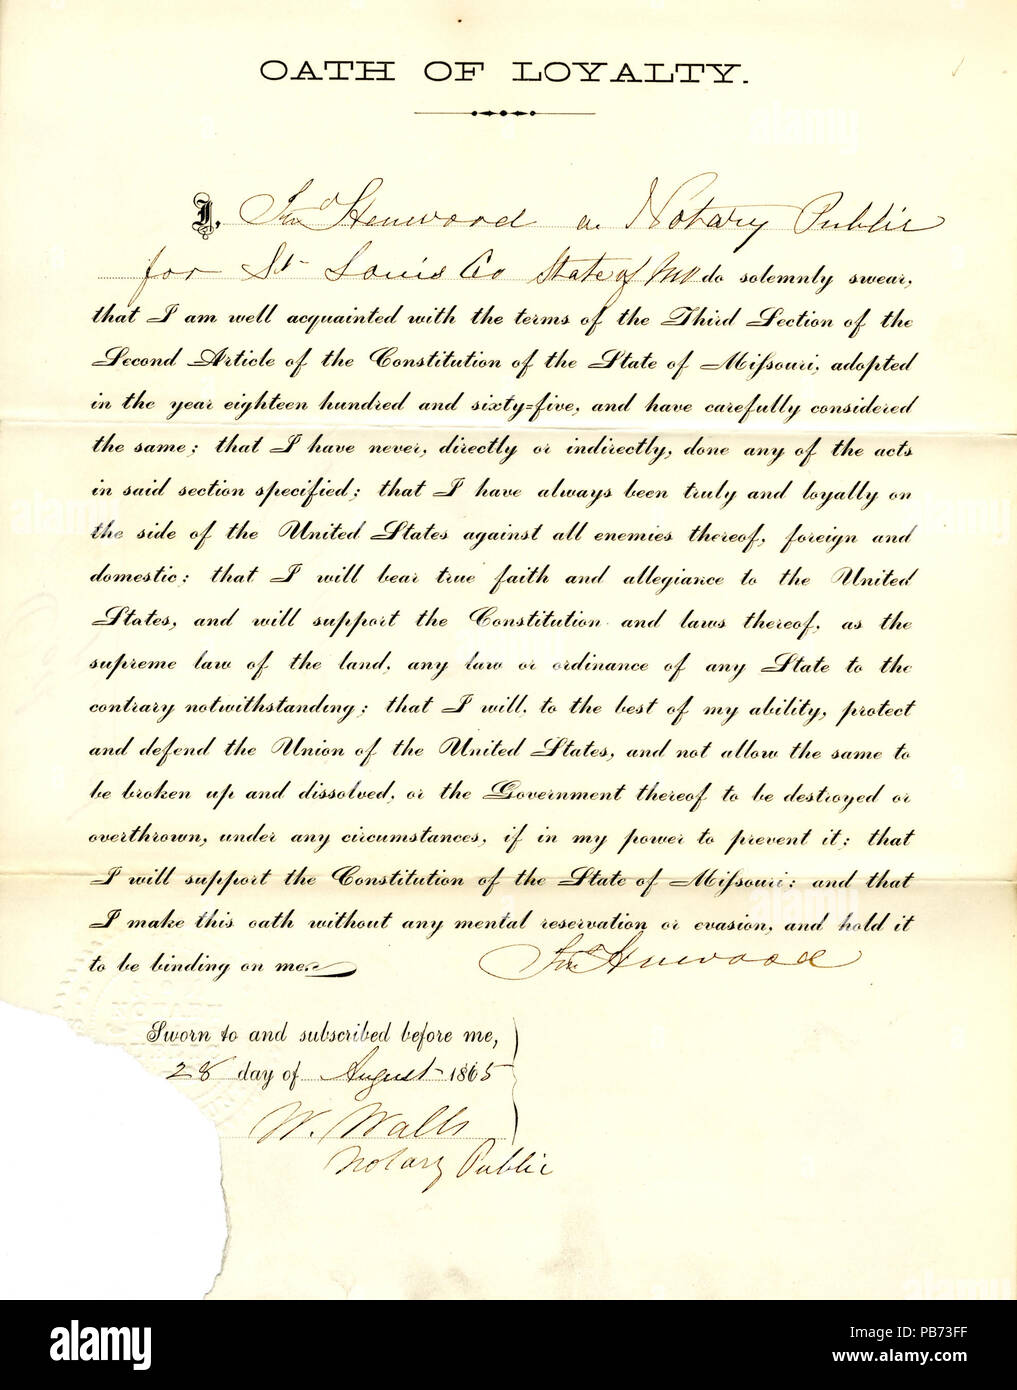 950 Loyalty oath of Jno. Henwood of Missouri, County of St. Louis Stock Photo